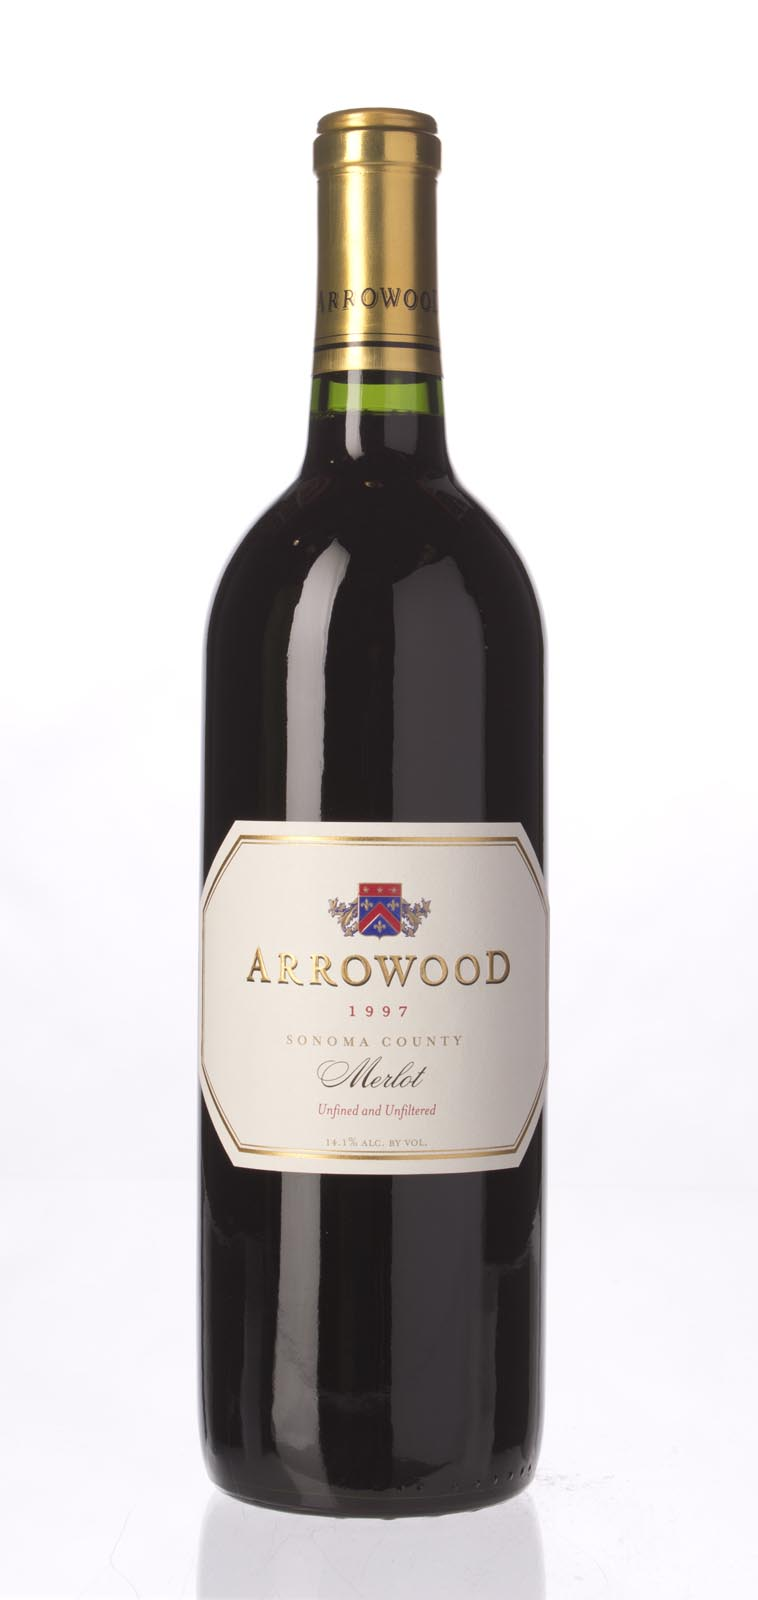 Arrowood Merlot Sonoma County 1997, 750mL (WA88) from The BPW - Merchants of rare and fine wines.